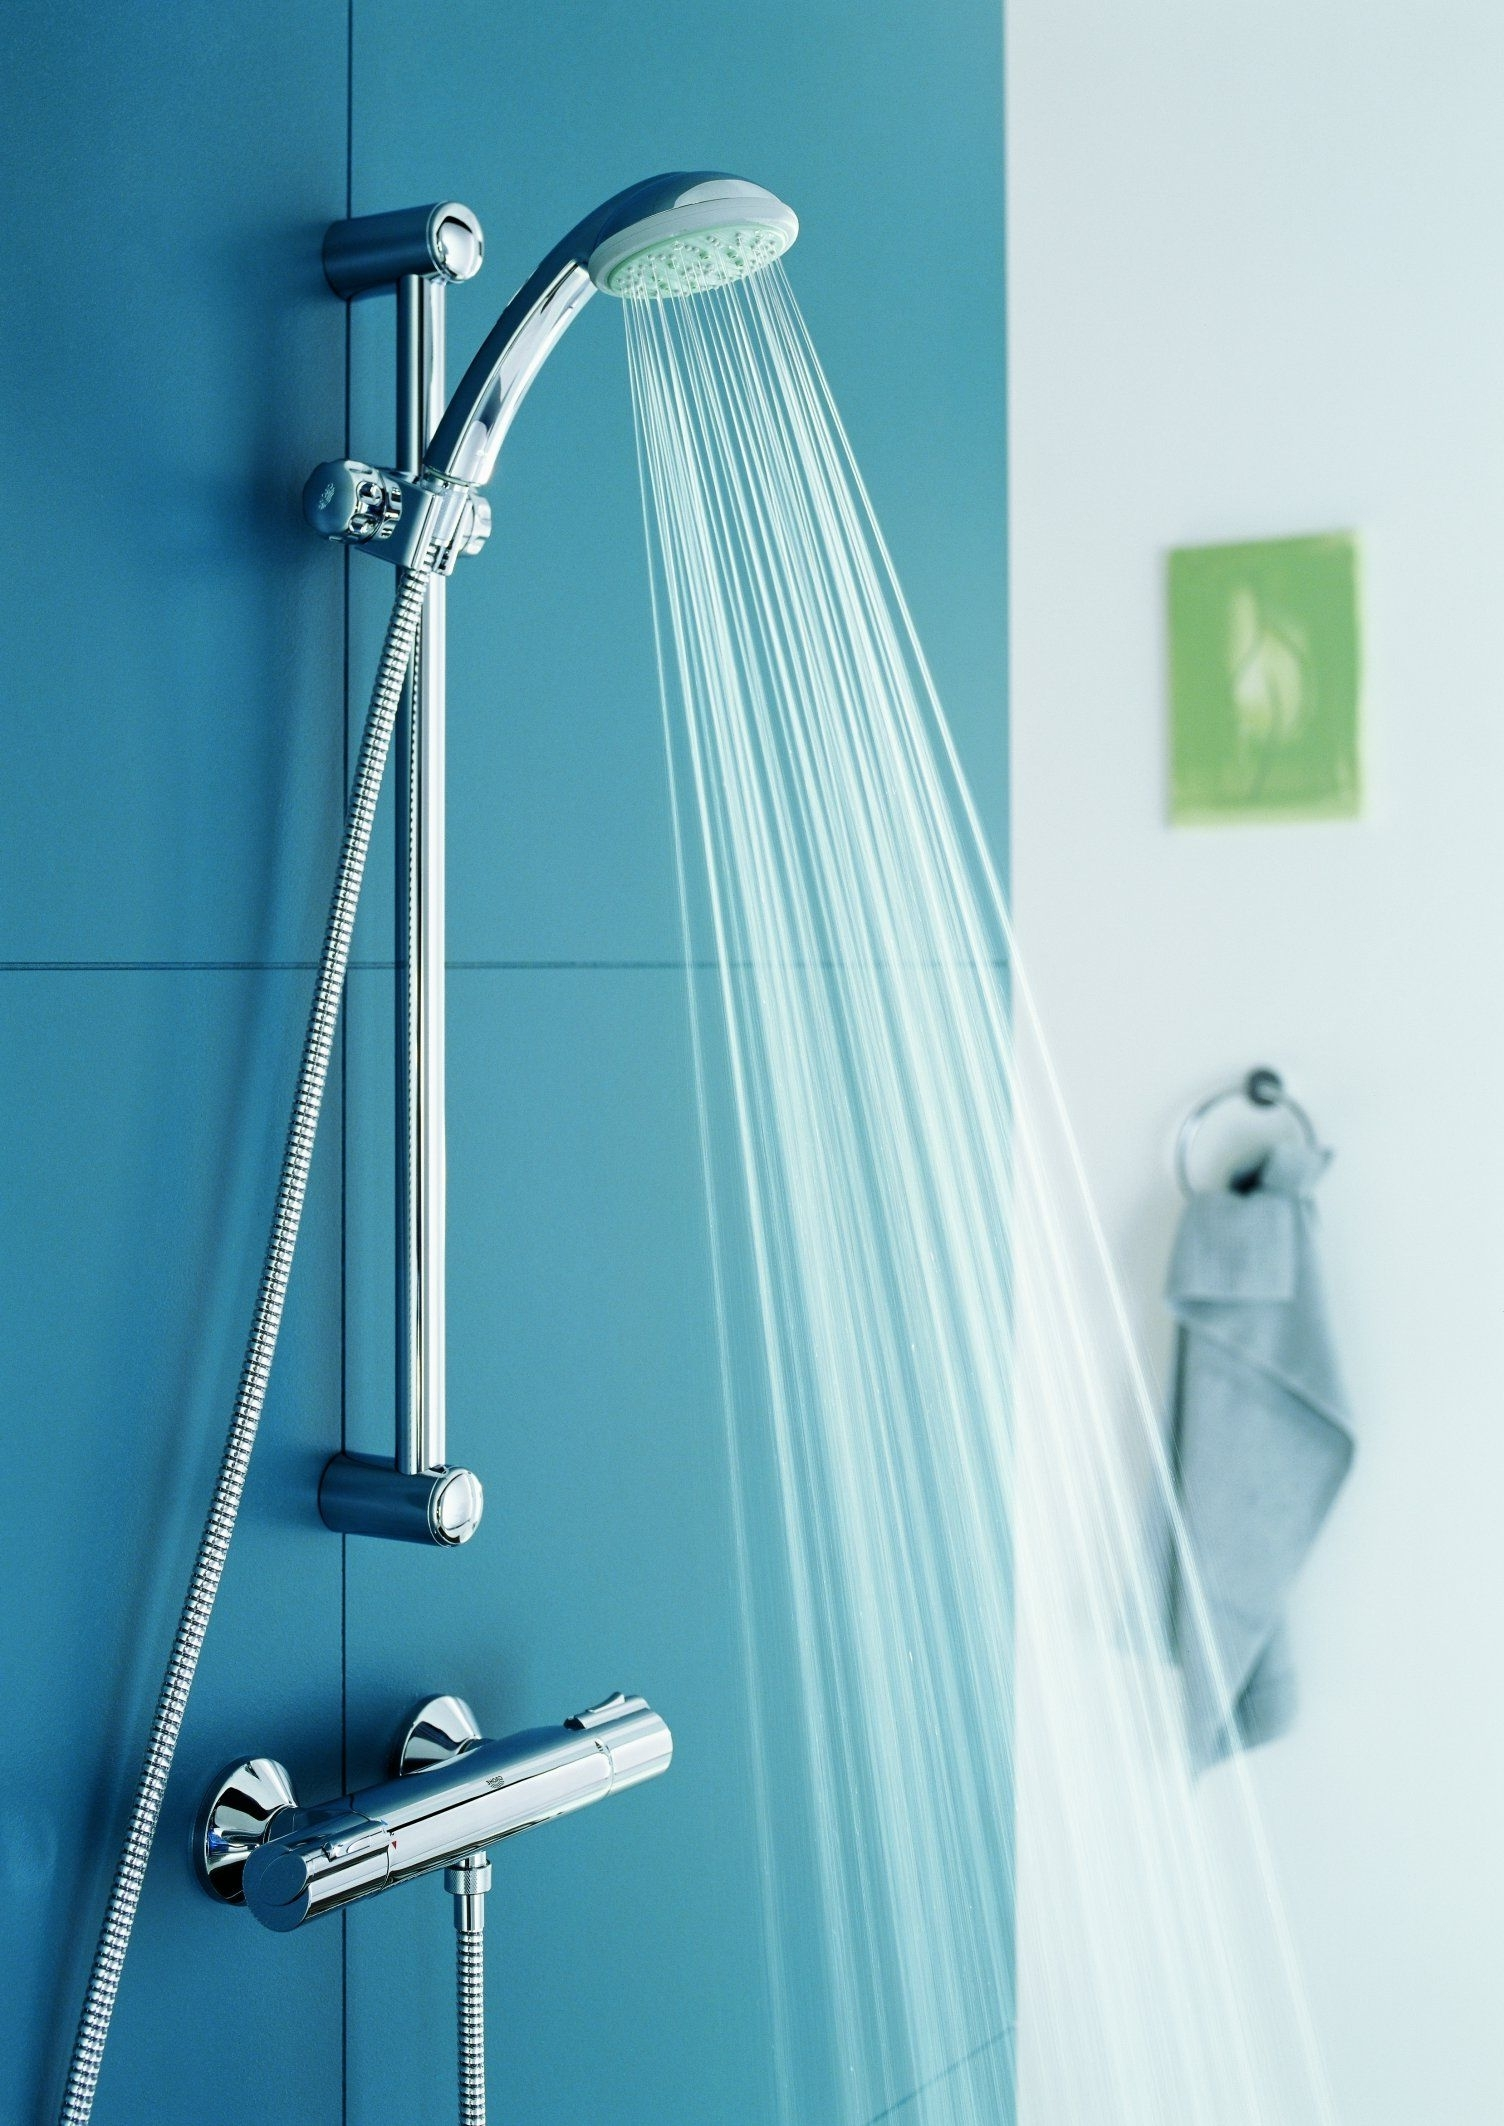 Grohe'S Grohemaster 2000 Is Available As A Complete Set Bathroom Design Set All Inclusive Grohe